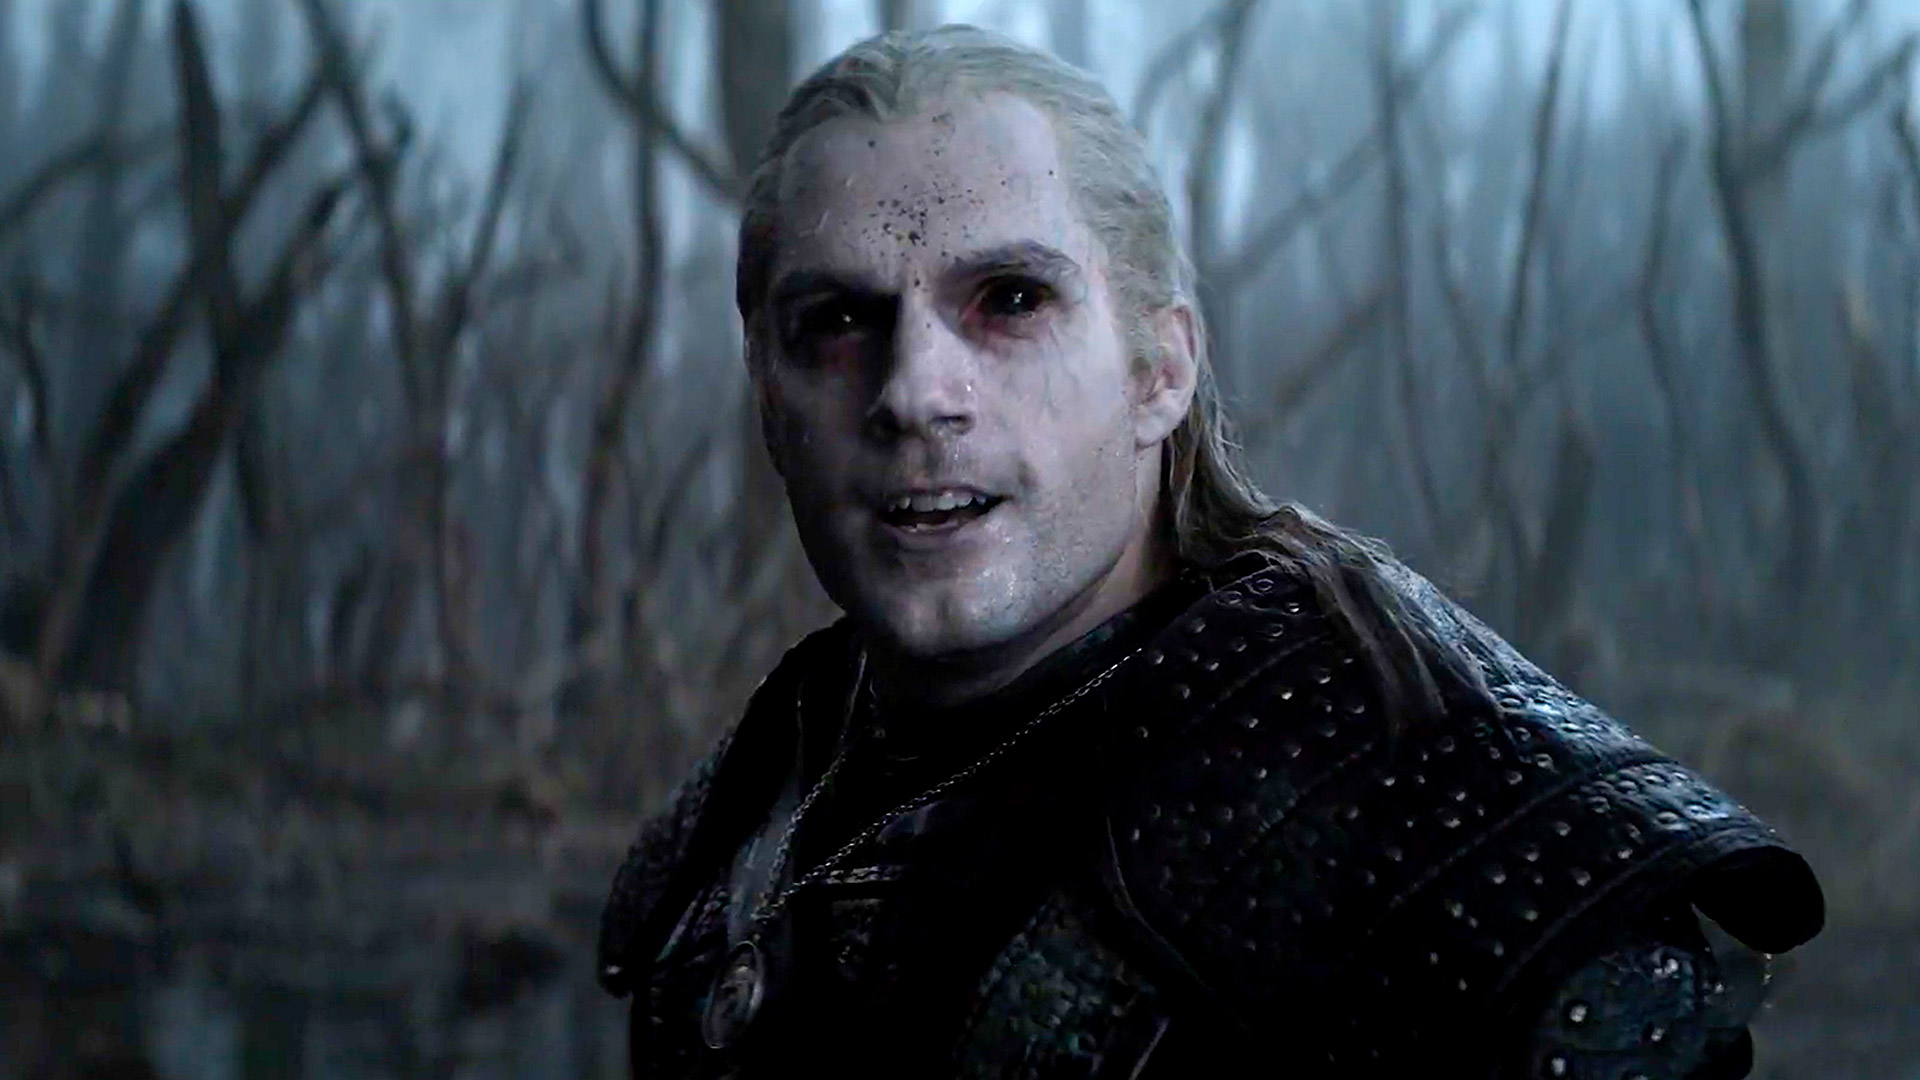 The Witcher, Geralt of Rivia, after fighting a monster.